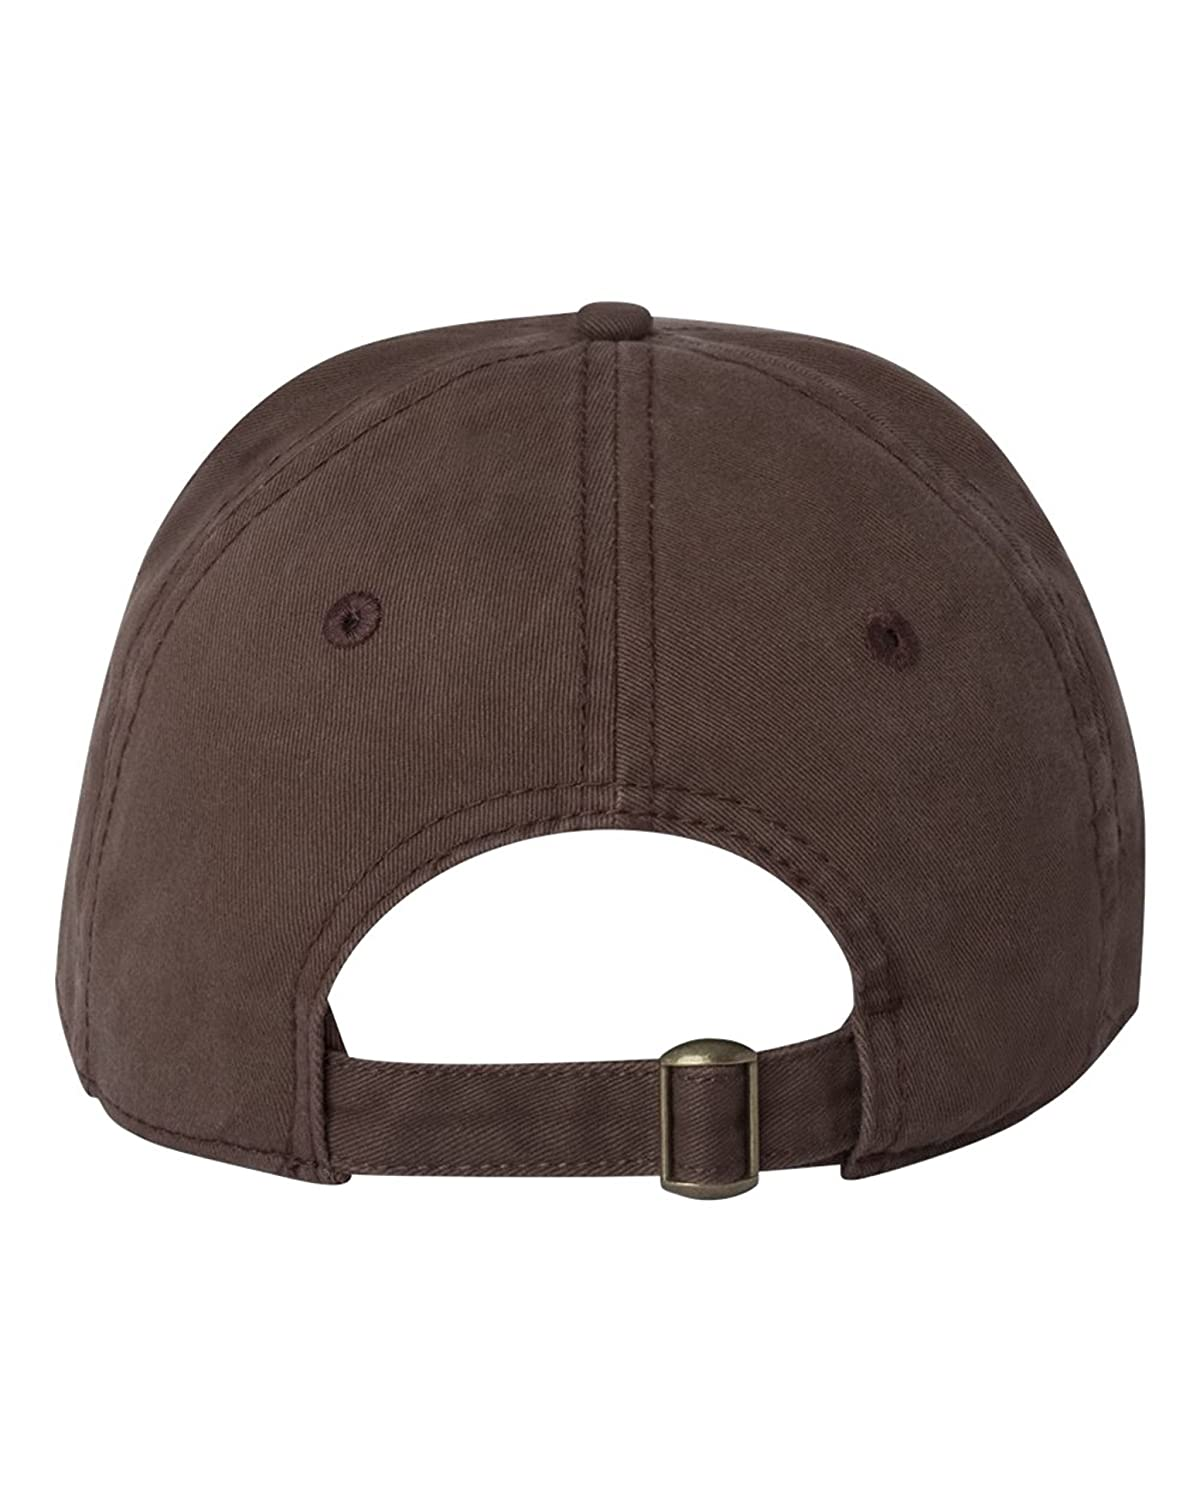 a62c2bd108c Amazon.com  Adjustable Brown Adult Eggplant Emoji Embroidered Dad Hat  Structured Cap  Clothing